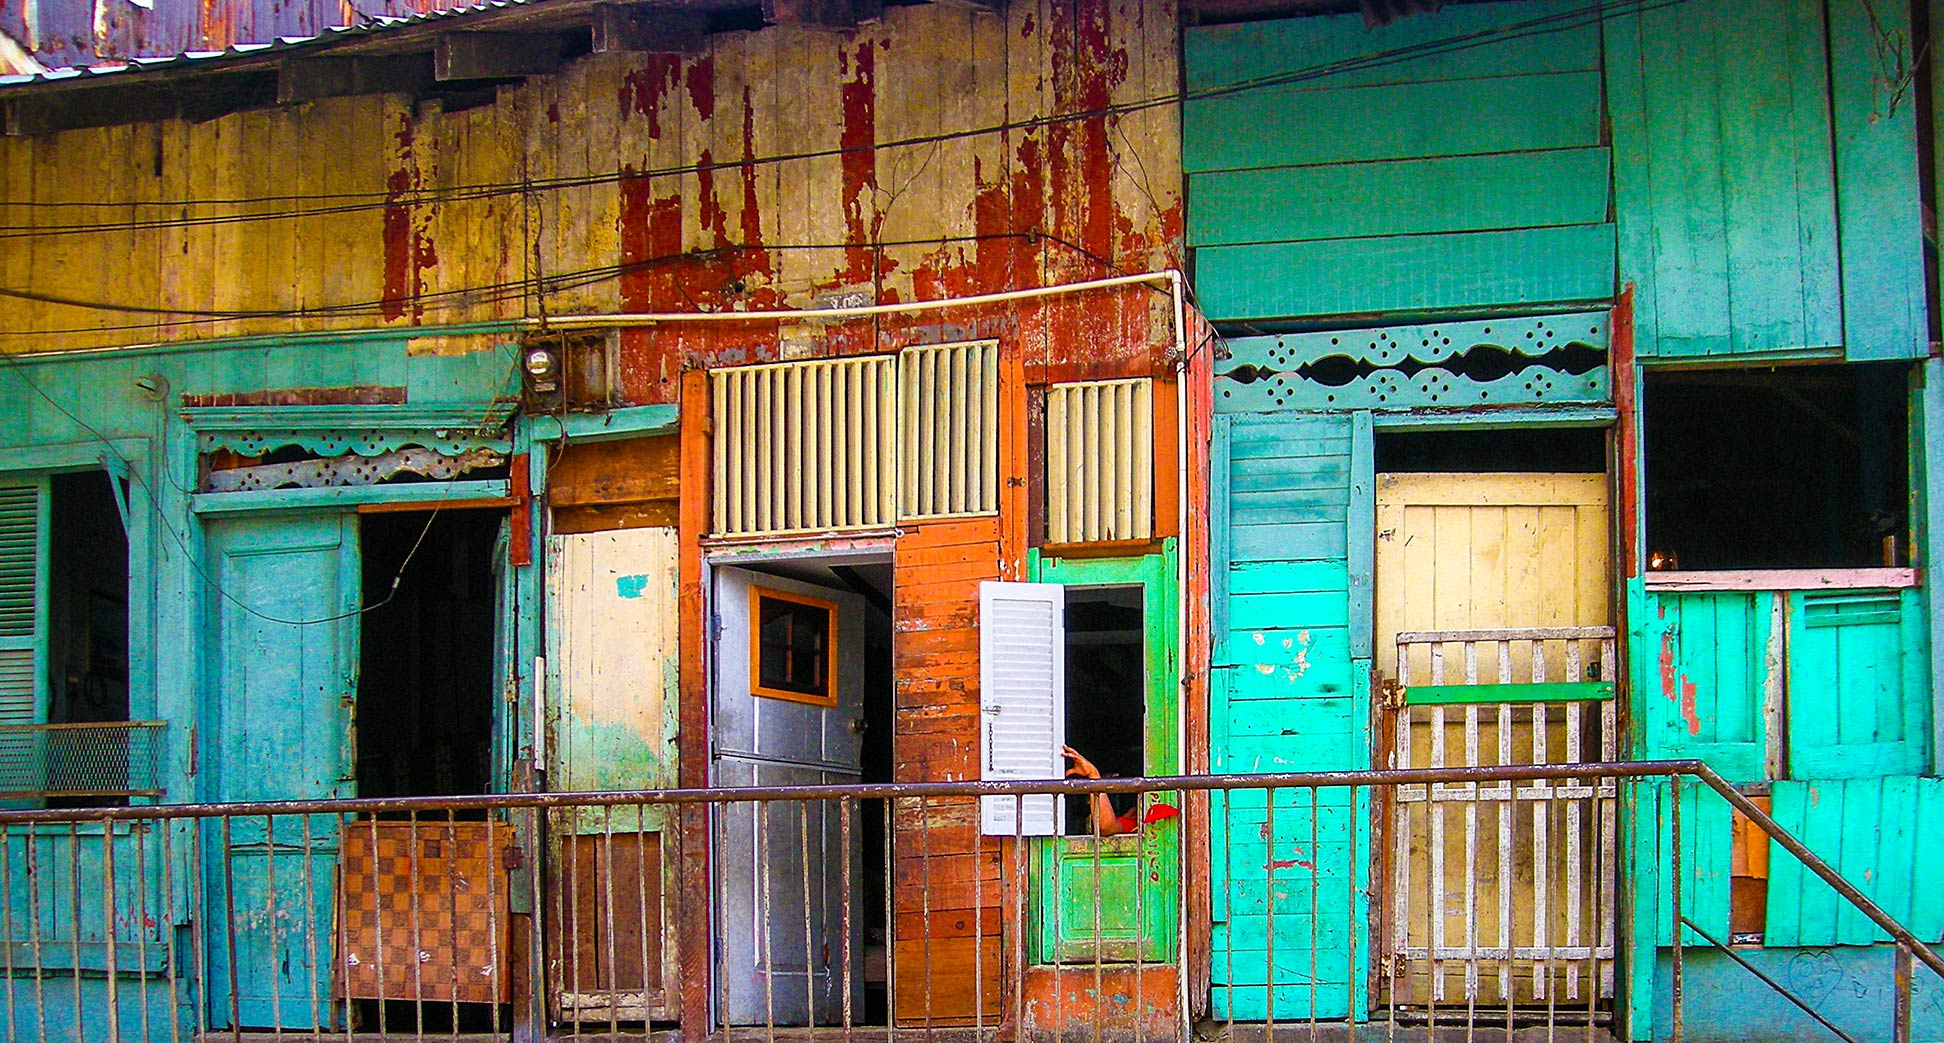 Substandard housing in an alleyway in Panama City, Panama.